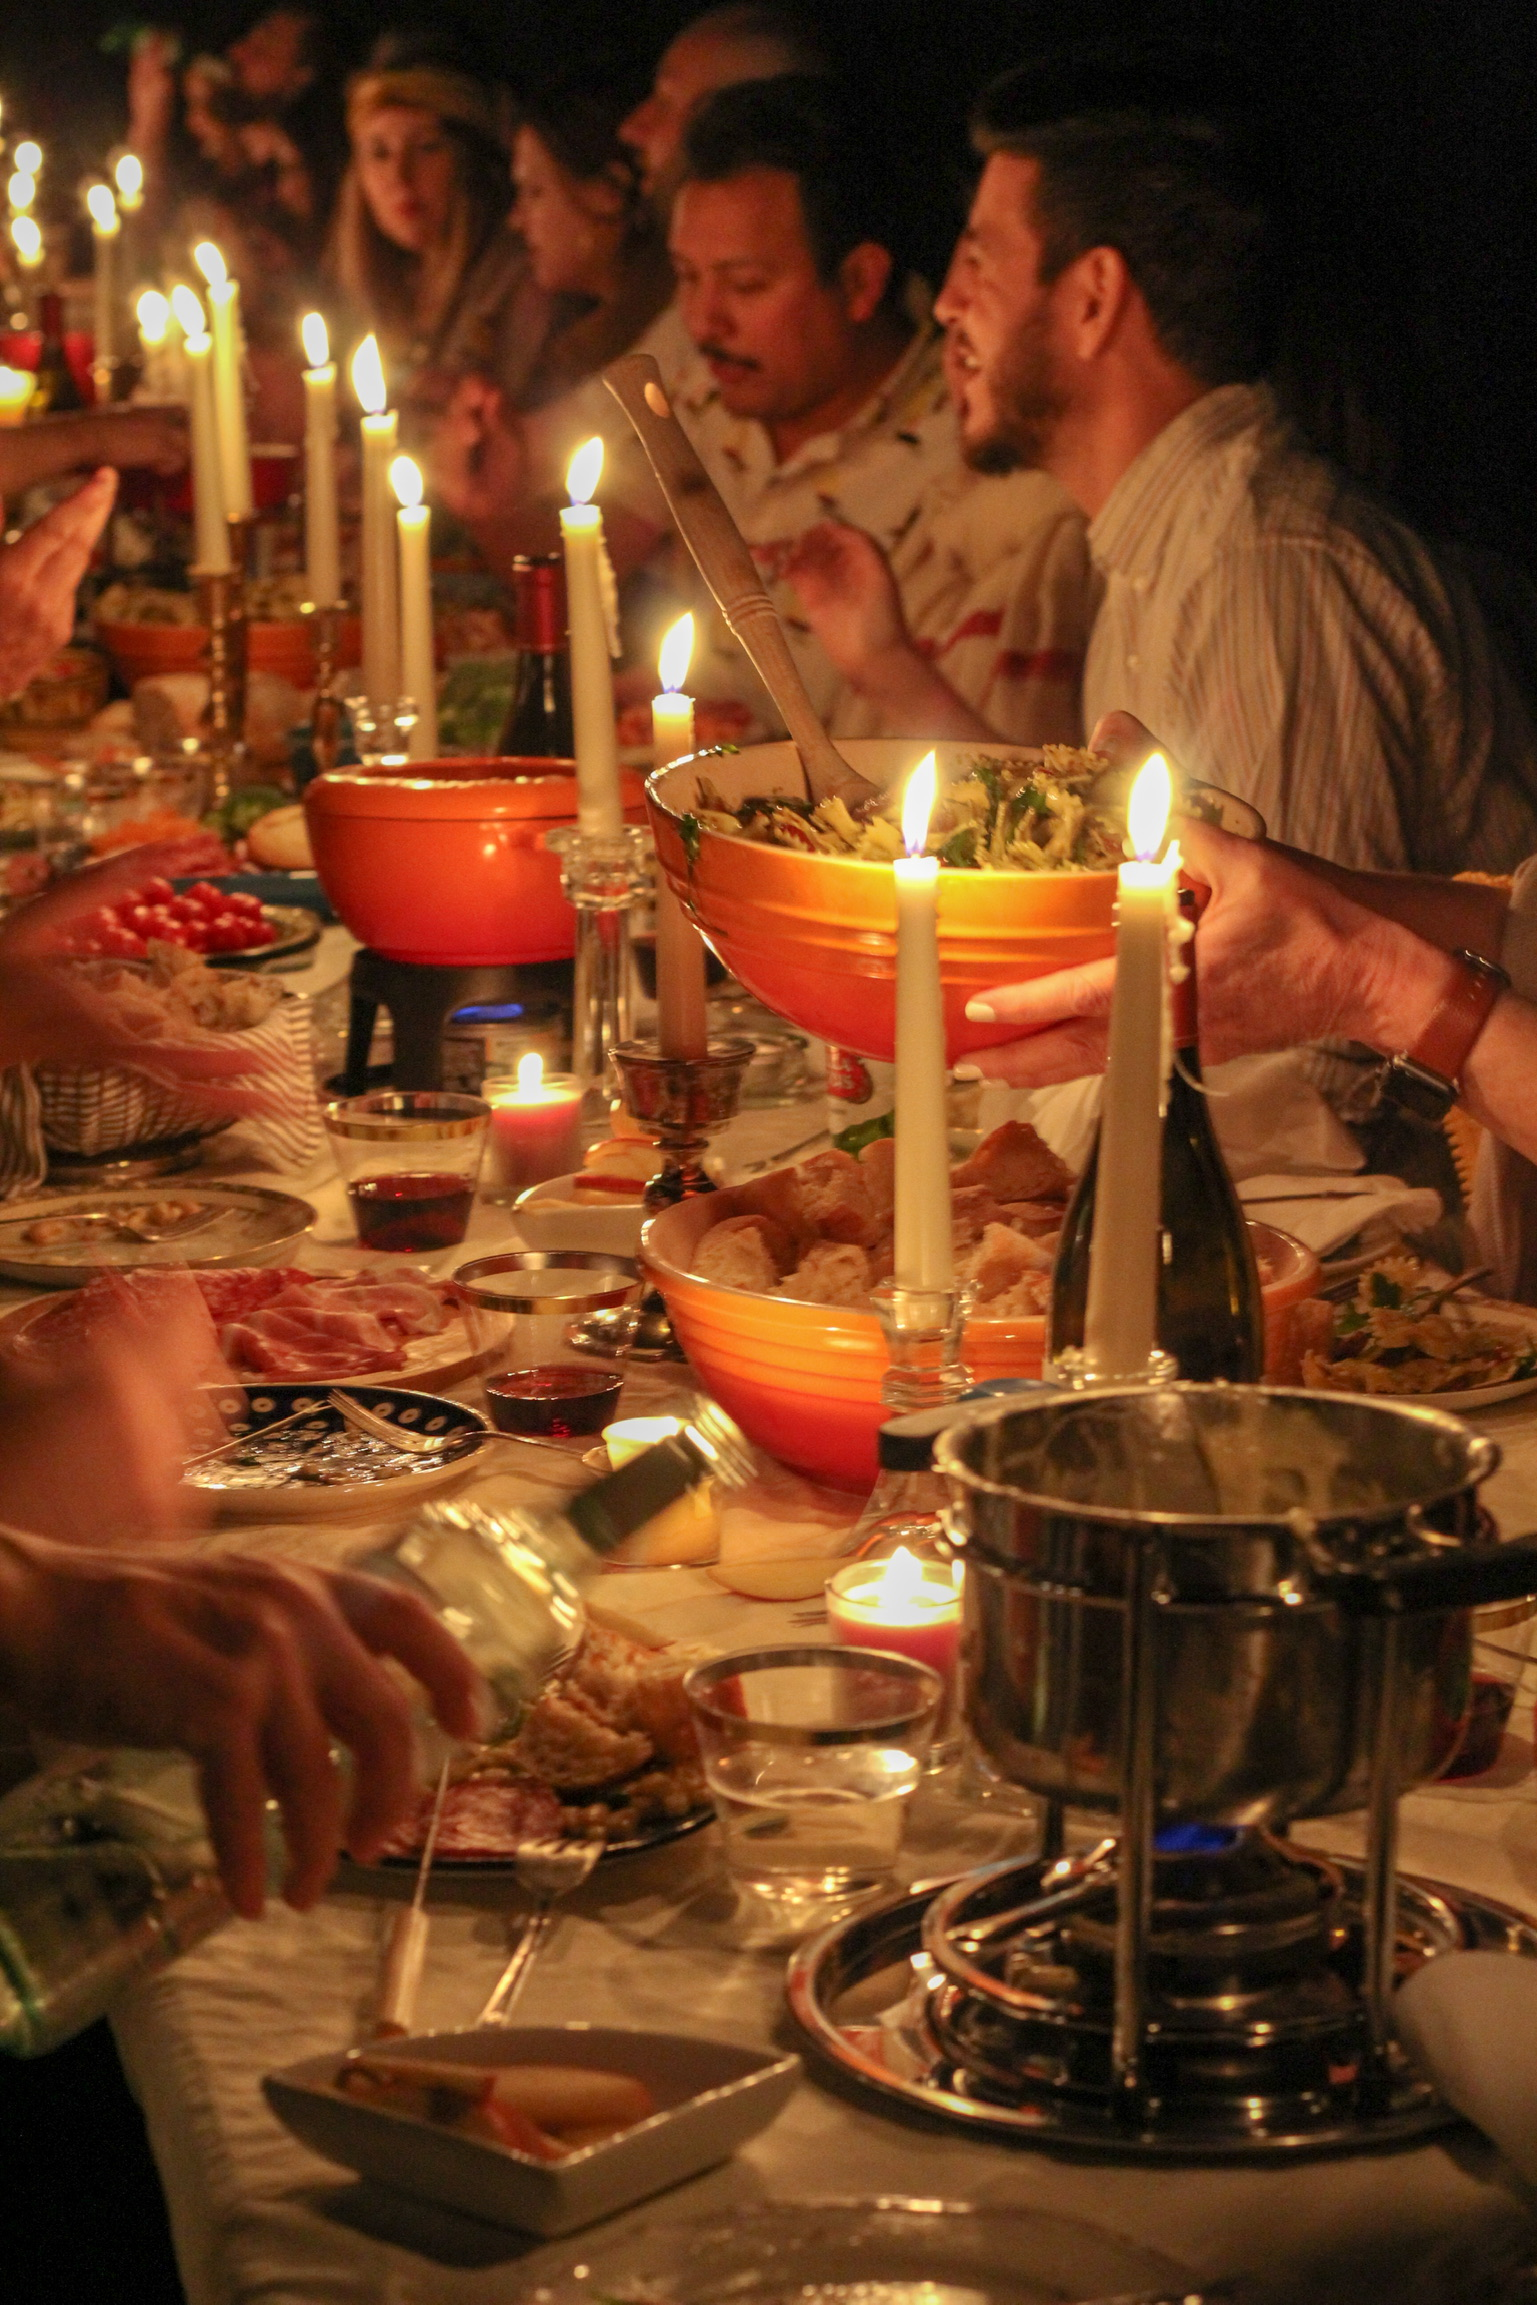 I Love That For You - Dinner Table Candles.JPG